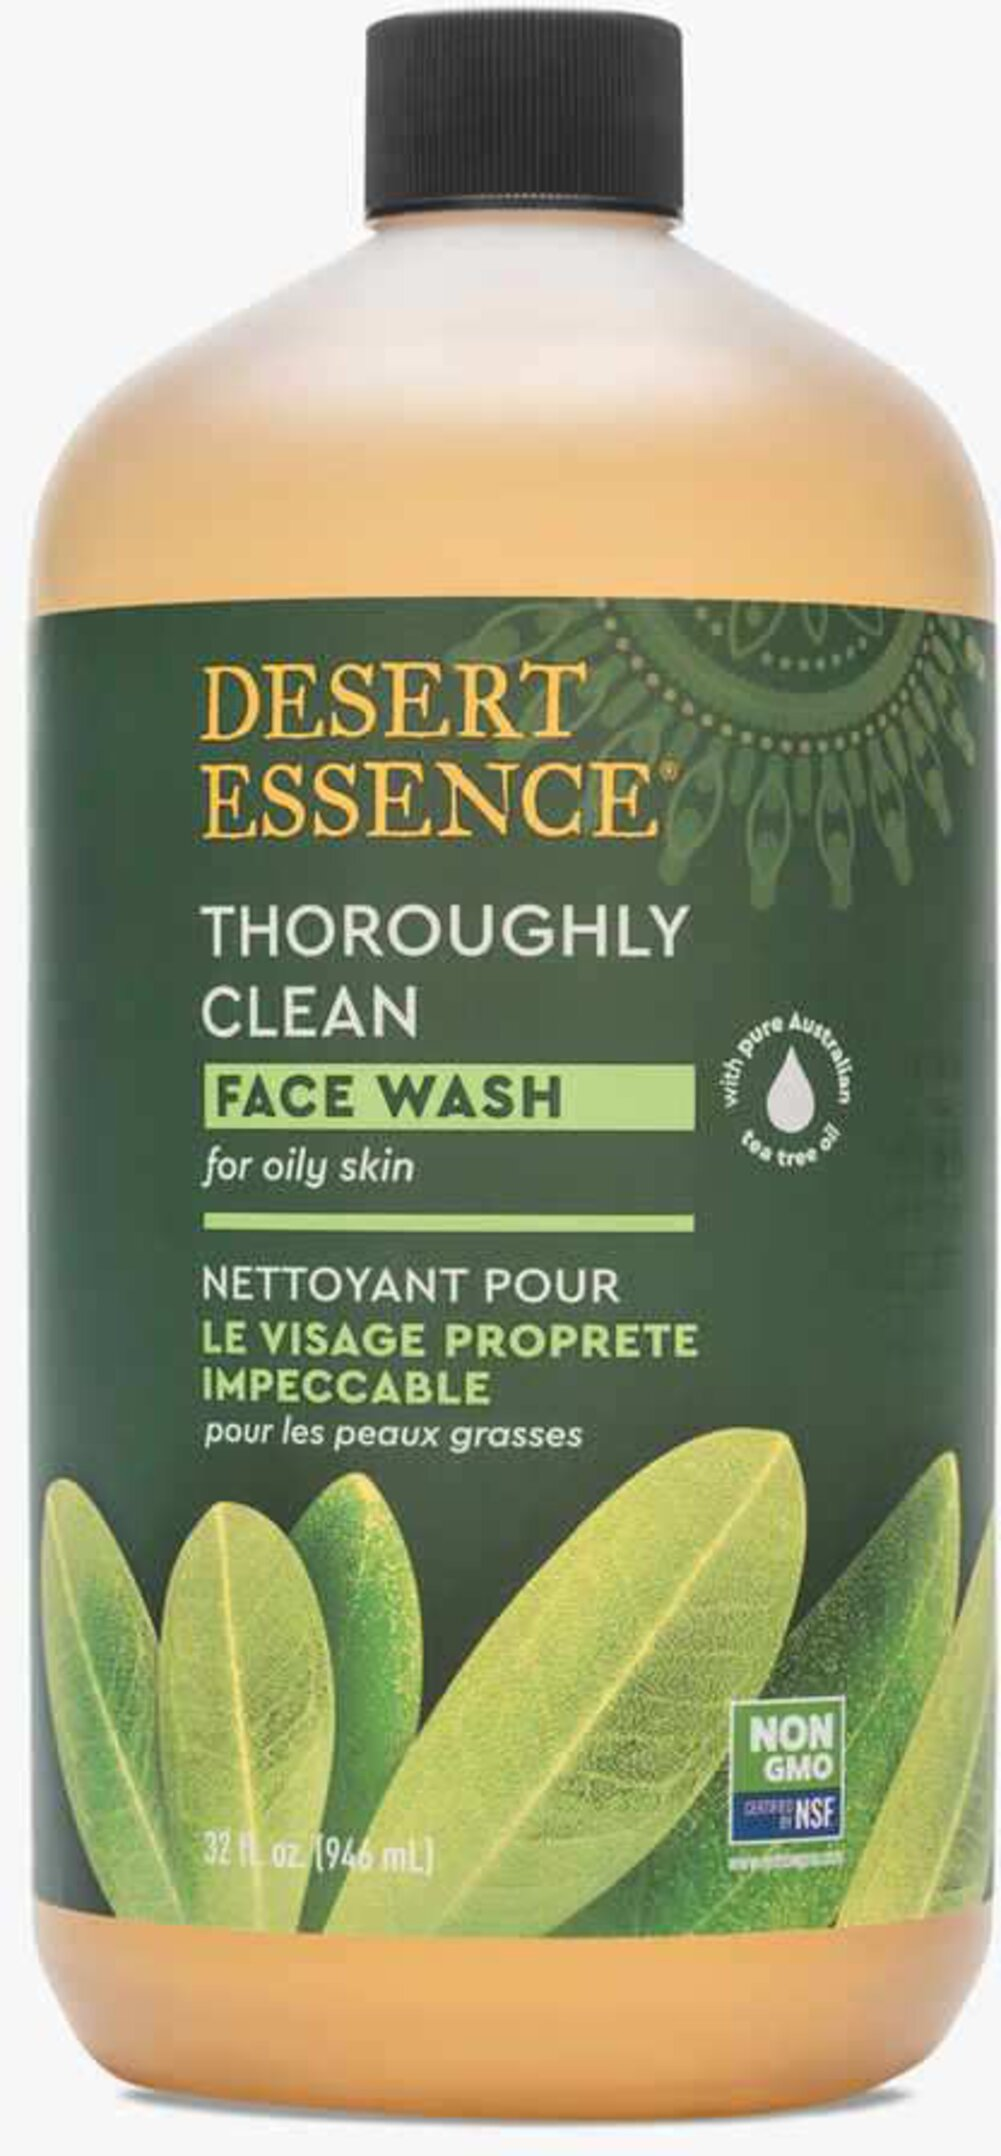 Tea Tree Oil Thoroughly Clean Face Wash for Oily/Combination Skin <p><b>From the Manufacturer's Label: </p></b><p>Desert Essence Thoroughly Clean Face Wash is a gentle cleansing solution that leaves your skin feeling clean and silky.  This unique face wash contains natural Organic Tea Tree Oil.  Included also are extracts of Goldenseal, Hawaiian White Ginger (Awapuhi) and the essential oil of Chamomile.  Mineral-rich Bladderwrack harvested from the sea, nourishe